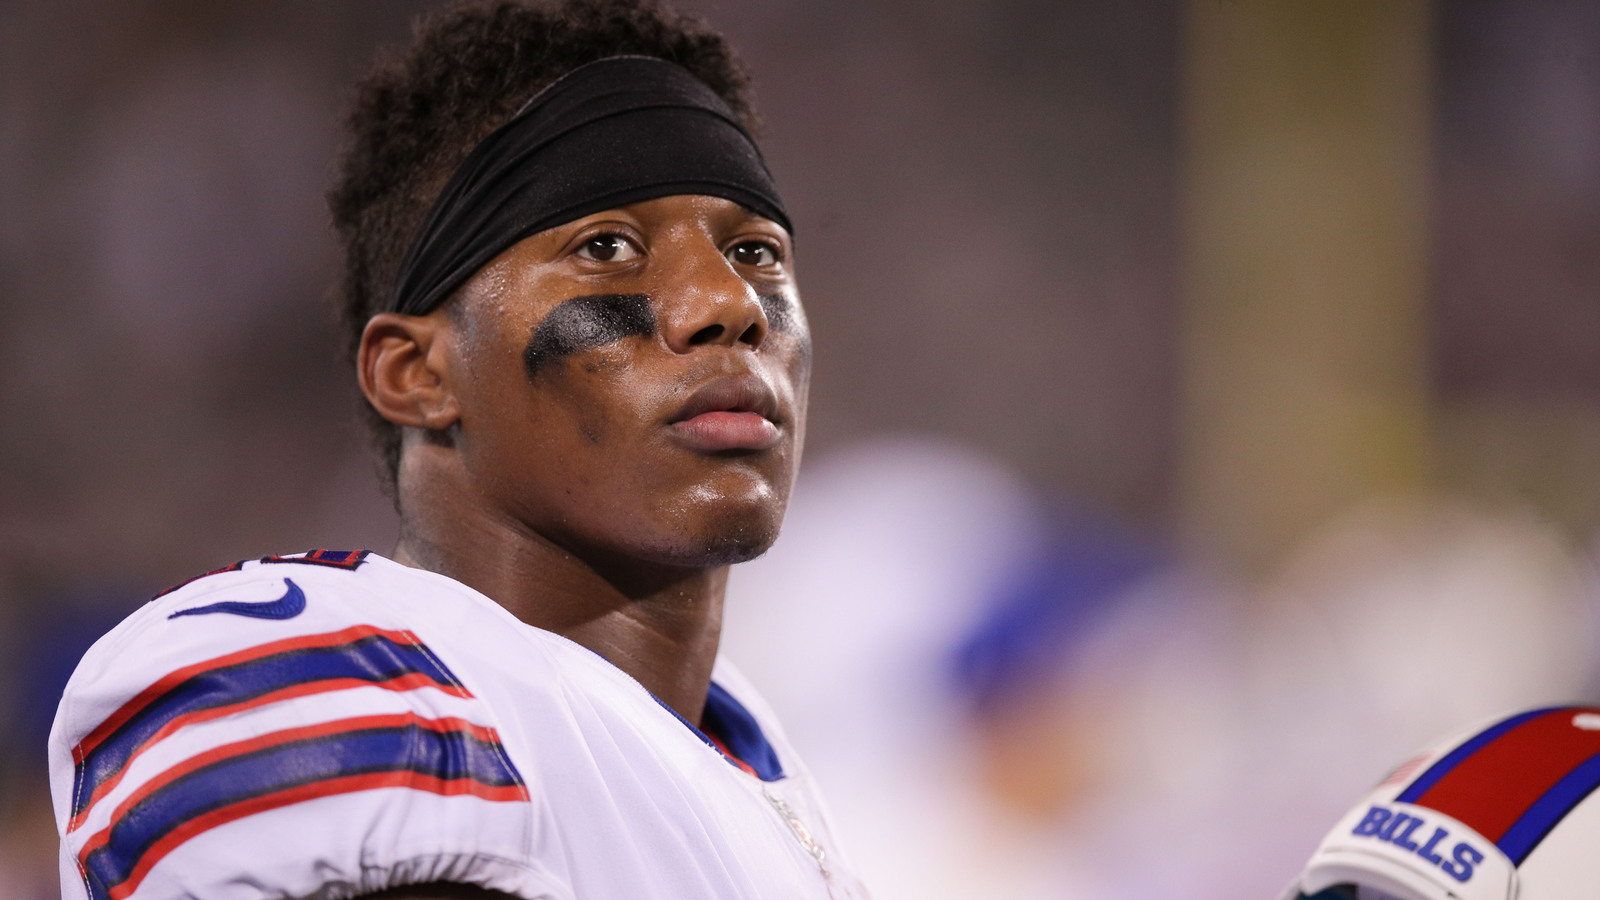 Zay jones arrested while naked nearly jumped out of building zay jones arrested while naked nearly jumped out of building yardbarker voltagebd Images